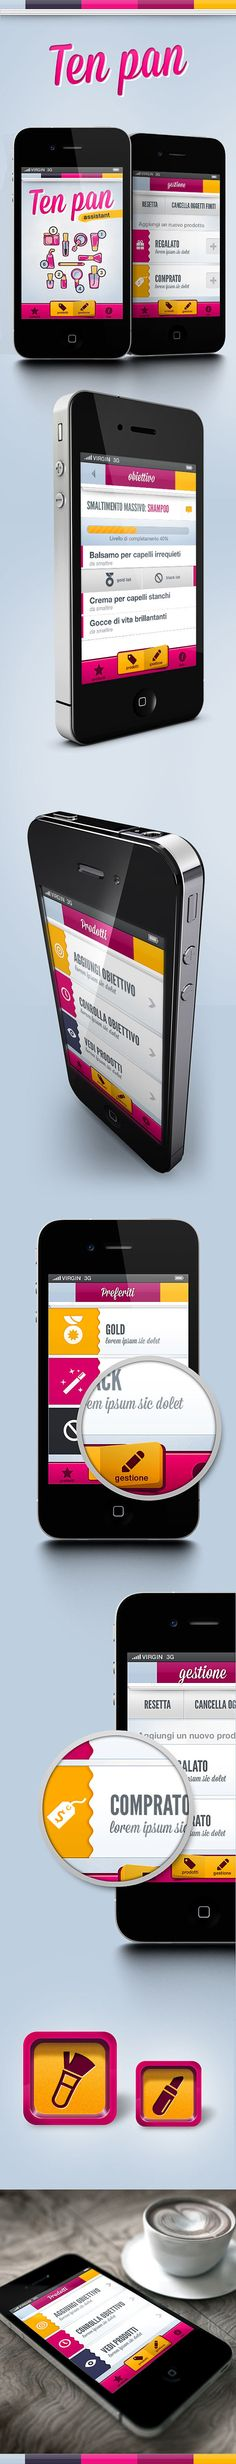 Ten Pan App - Mobile ui for Ten Pan Project by Gaia Zuccaro, via Behance